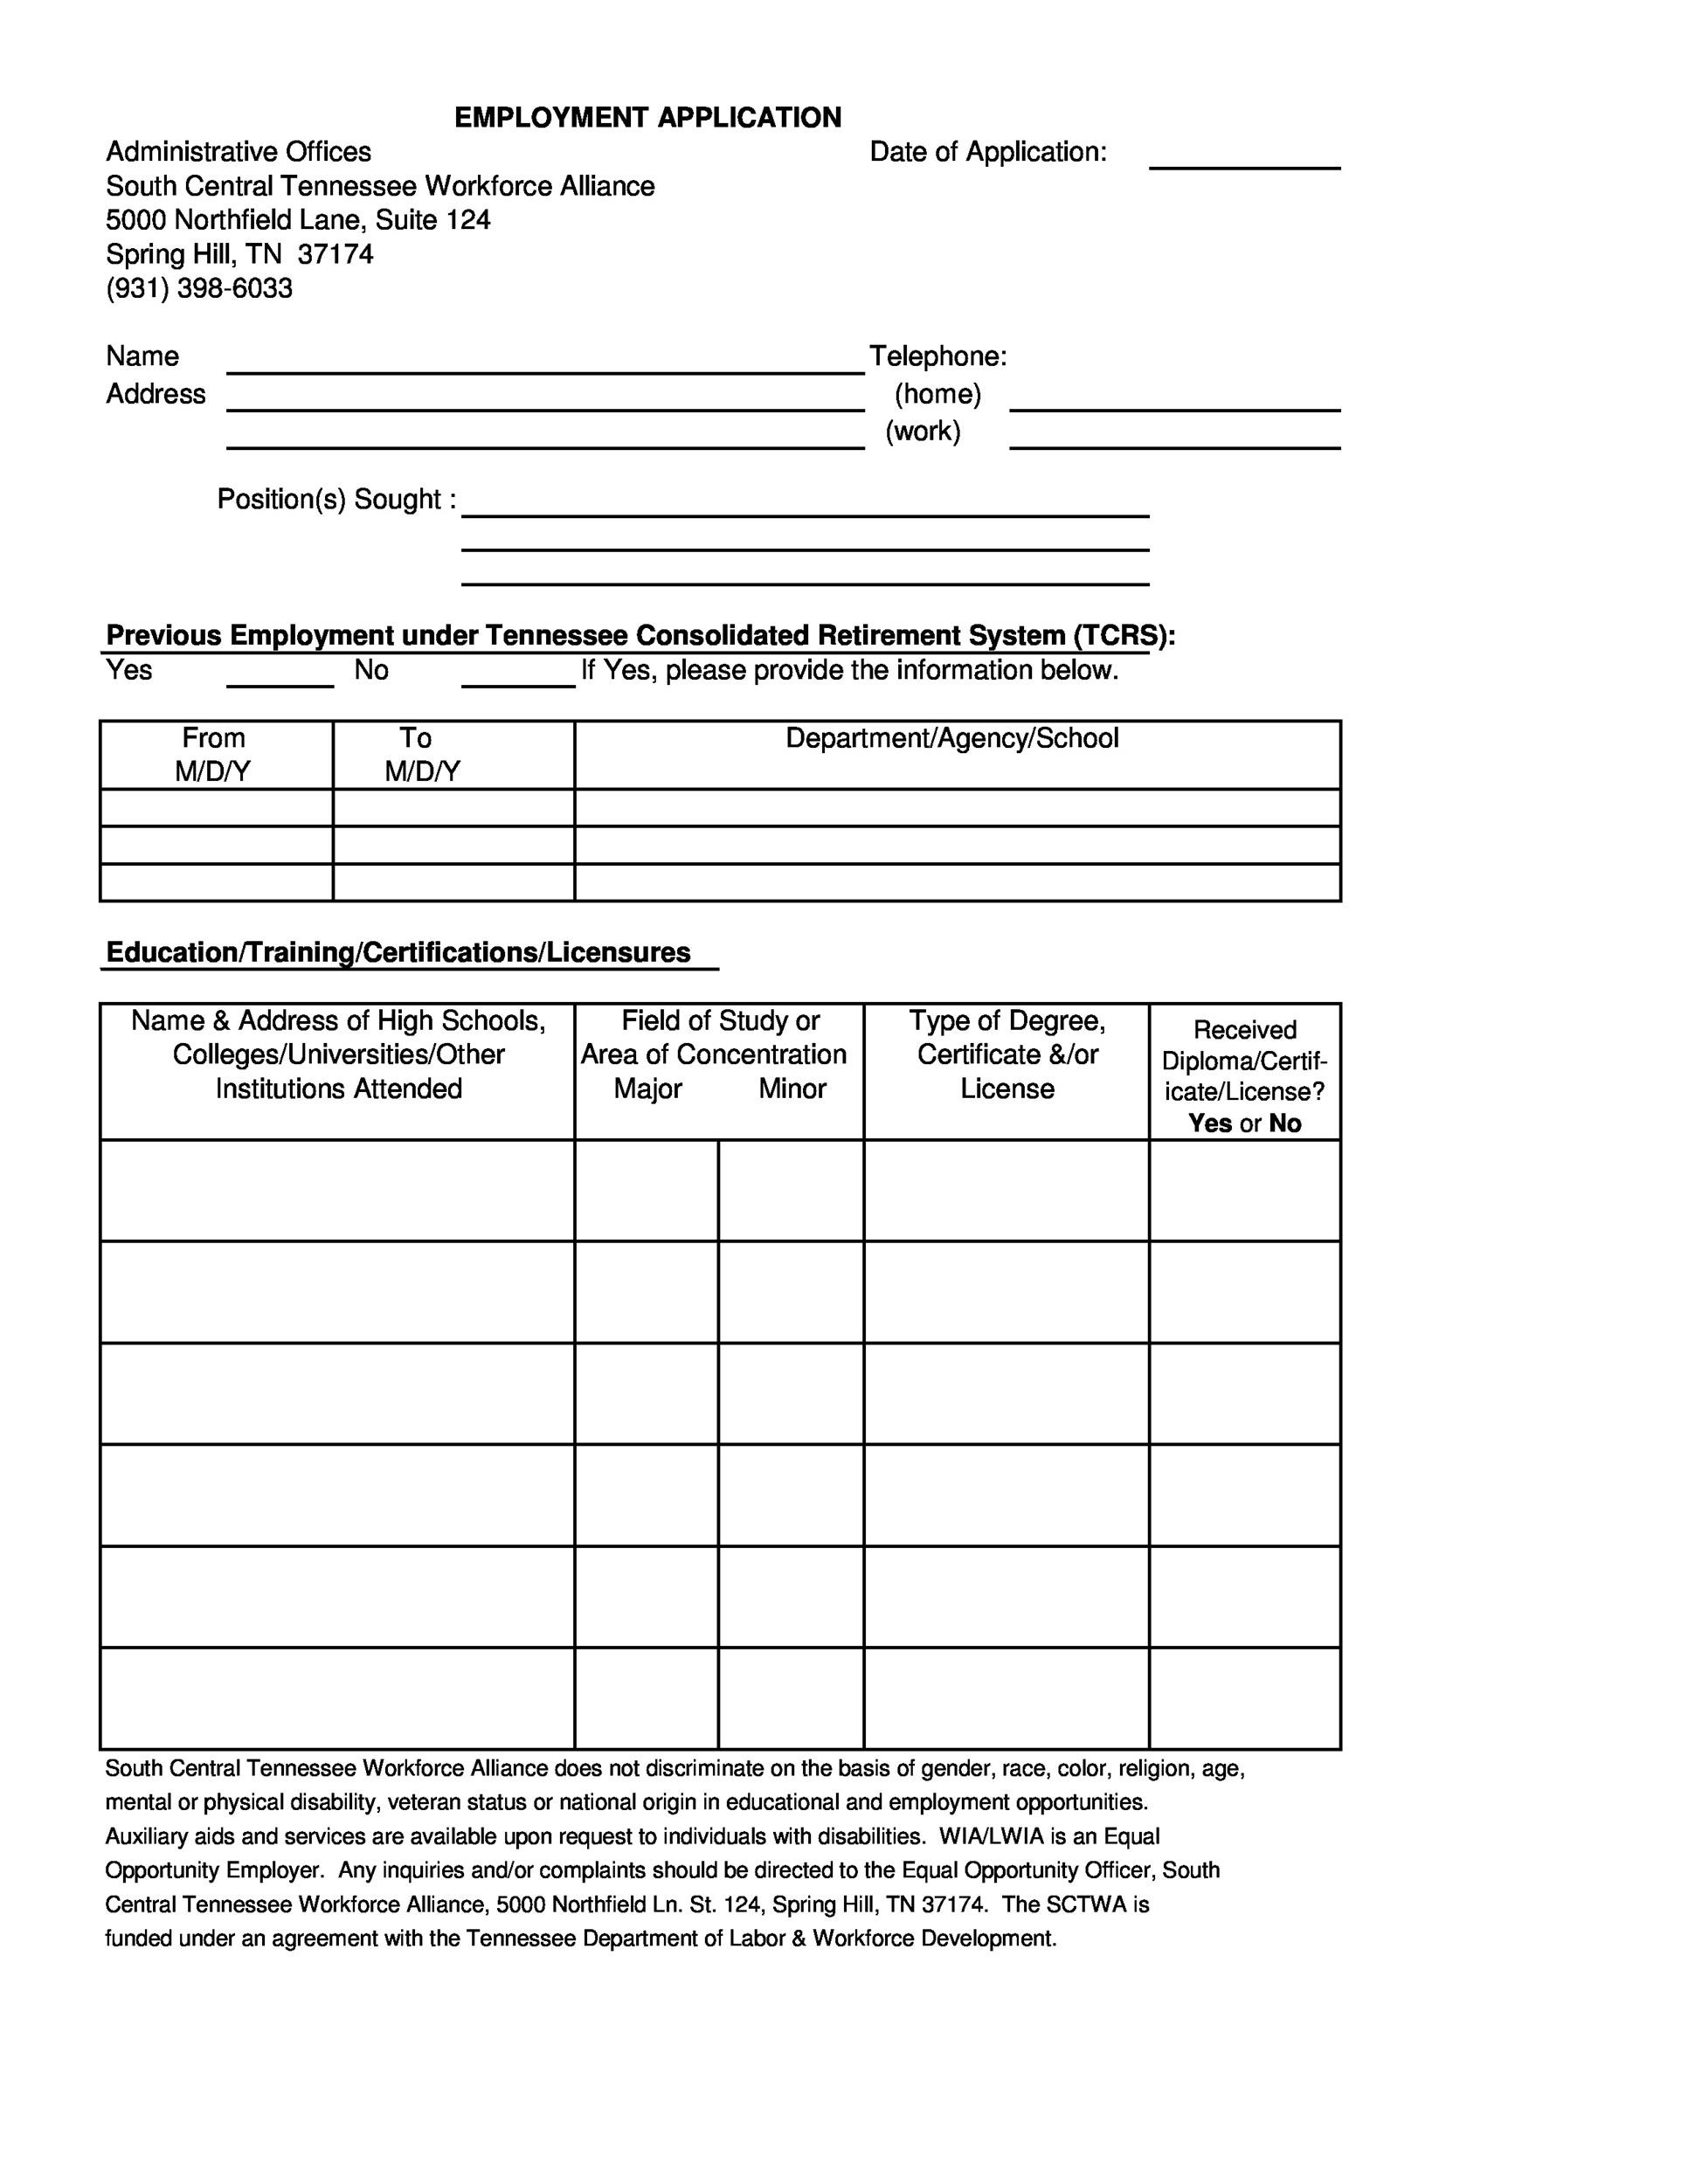 photo regarding Free Printable Employment Application Form known as 50 Cost-free Jobs / Activity Software Kind Templates